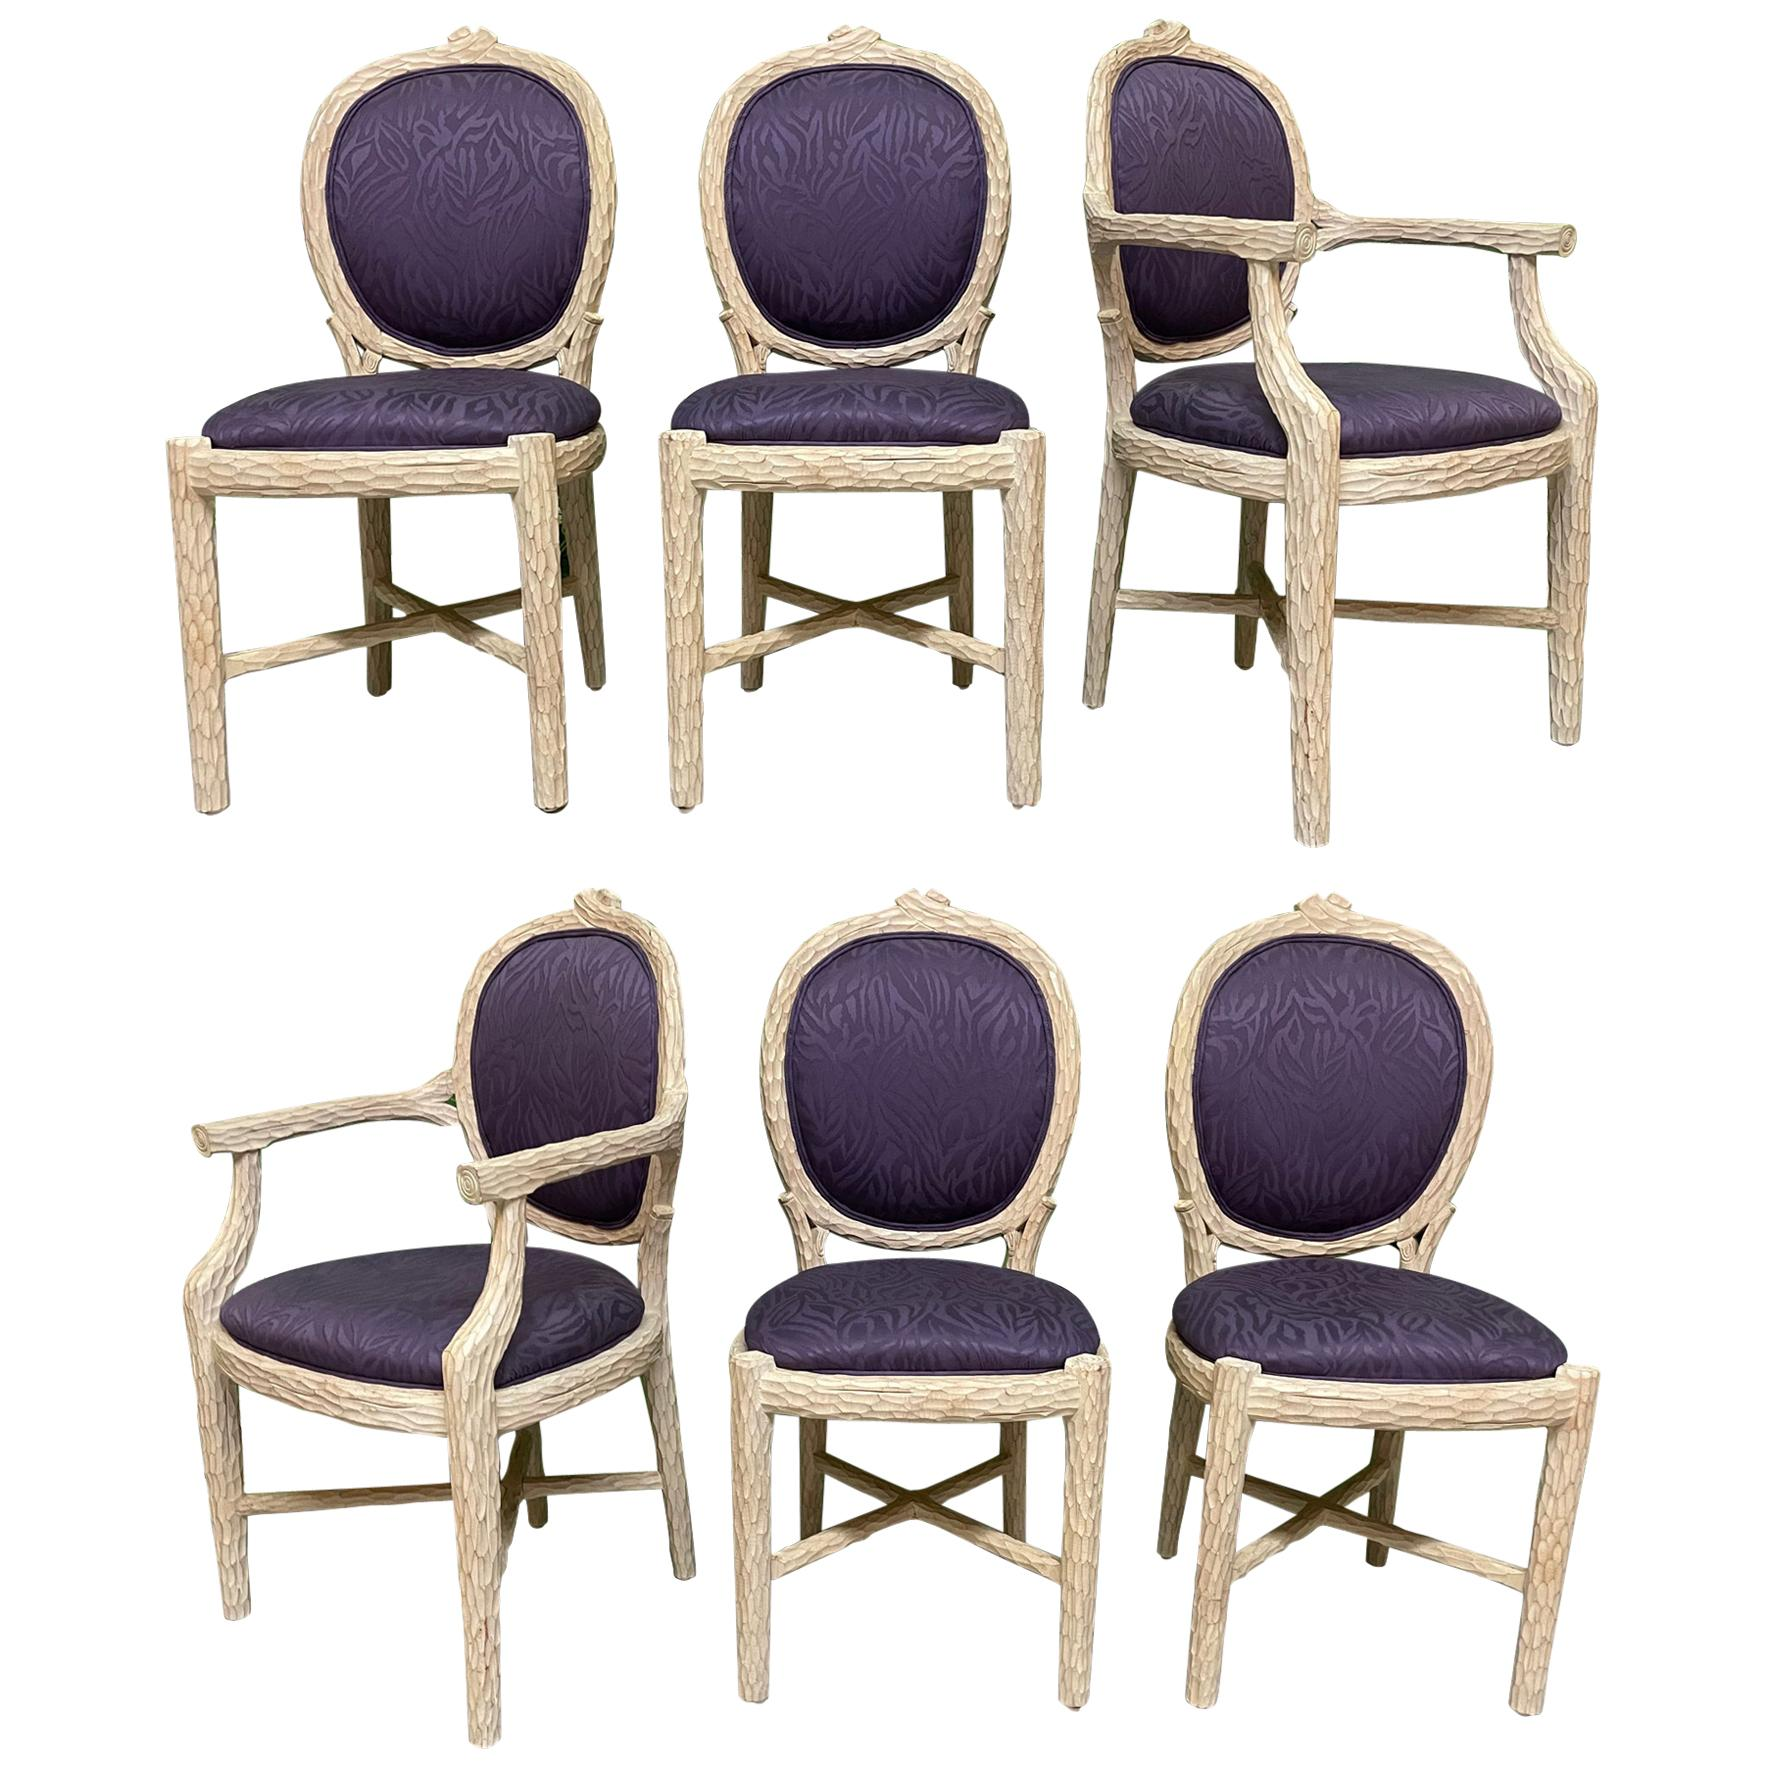 Faux Bois Carved Twig Dining Chairs, Set of 6